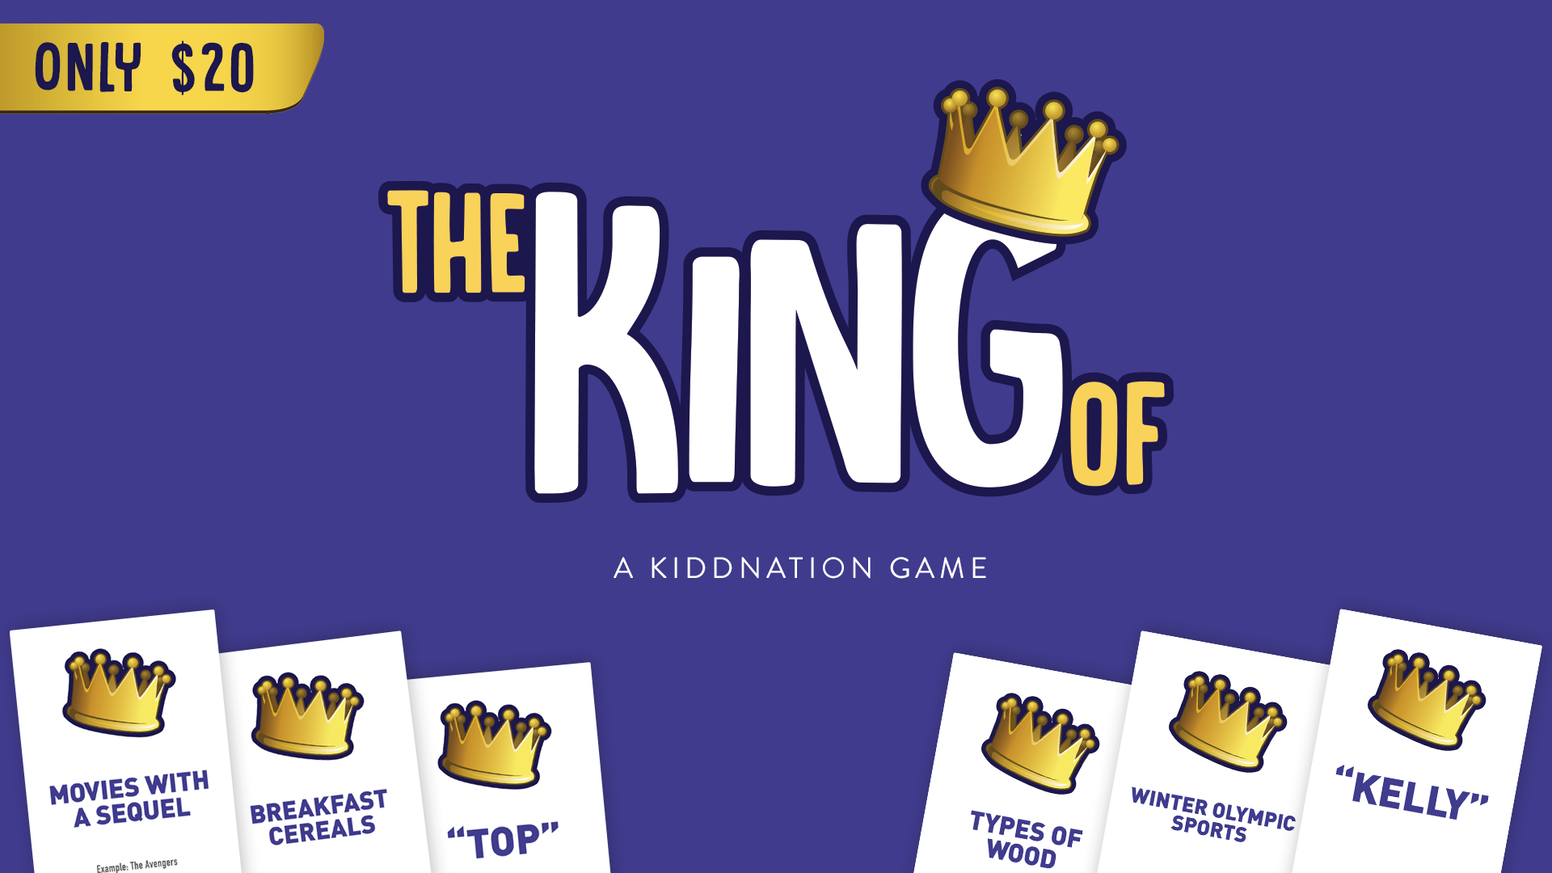 The King Of - A Party Card Game for Everyone by The Kidd